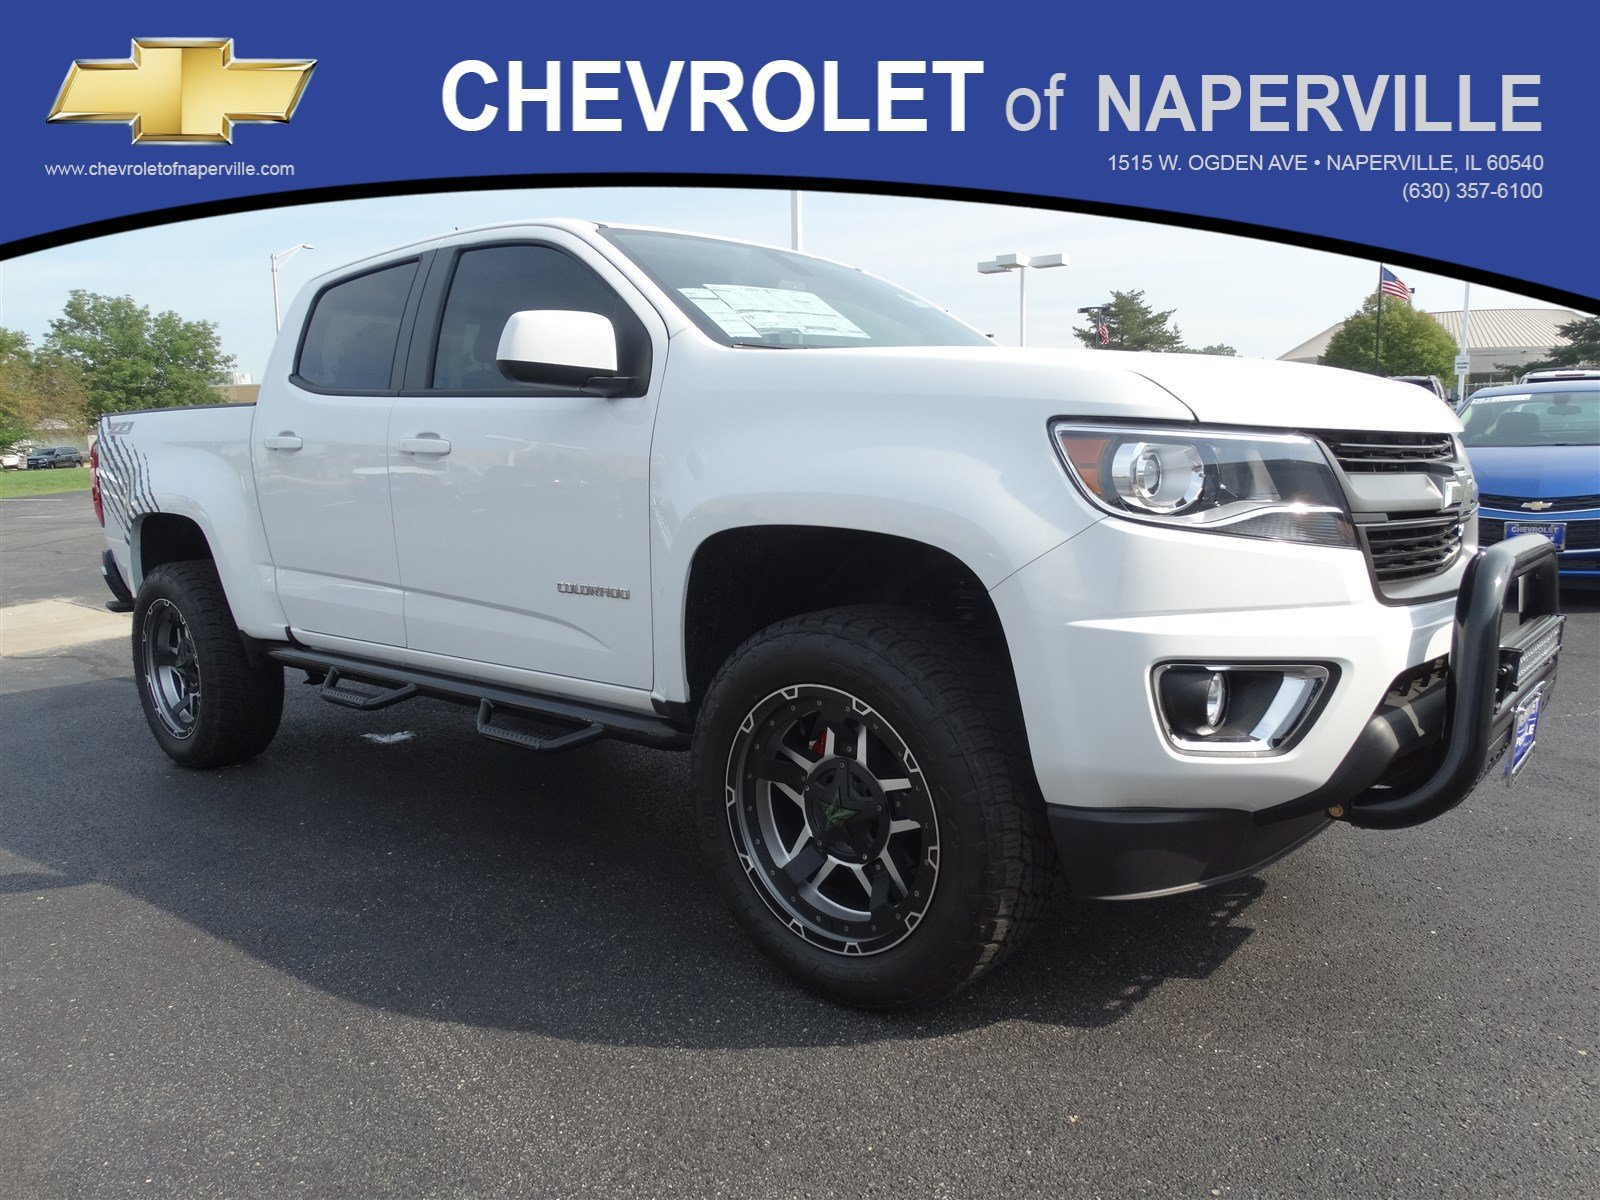 new 2017 chevrolet colorado 4wd z71 crew cab pickup in naperville t6193 chevrolet of naperville. Black Bedroom Furniture Sets. Home Design Ideas